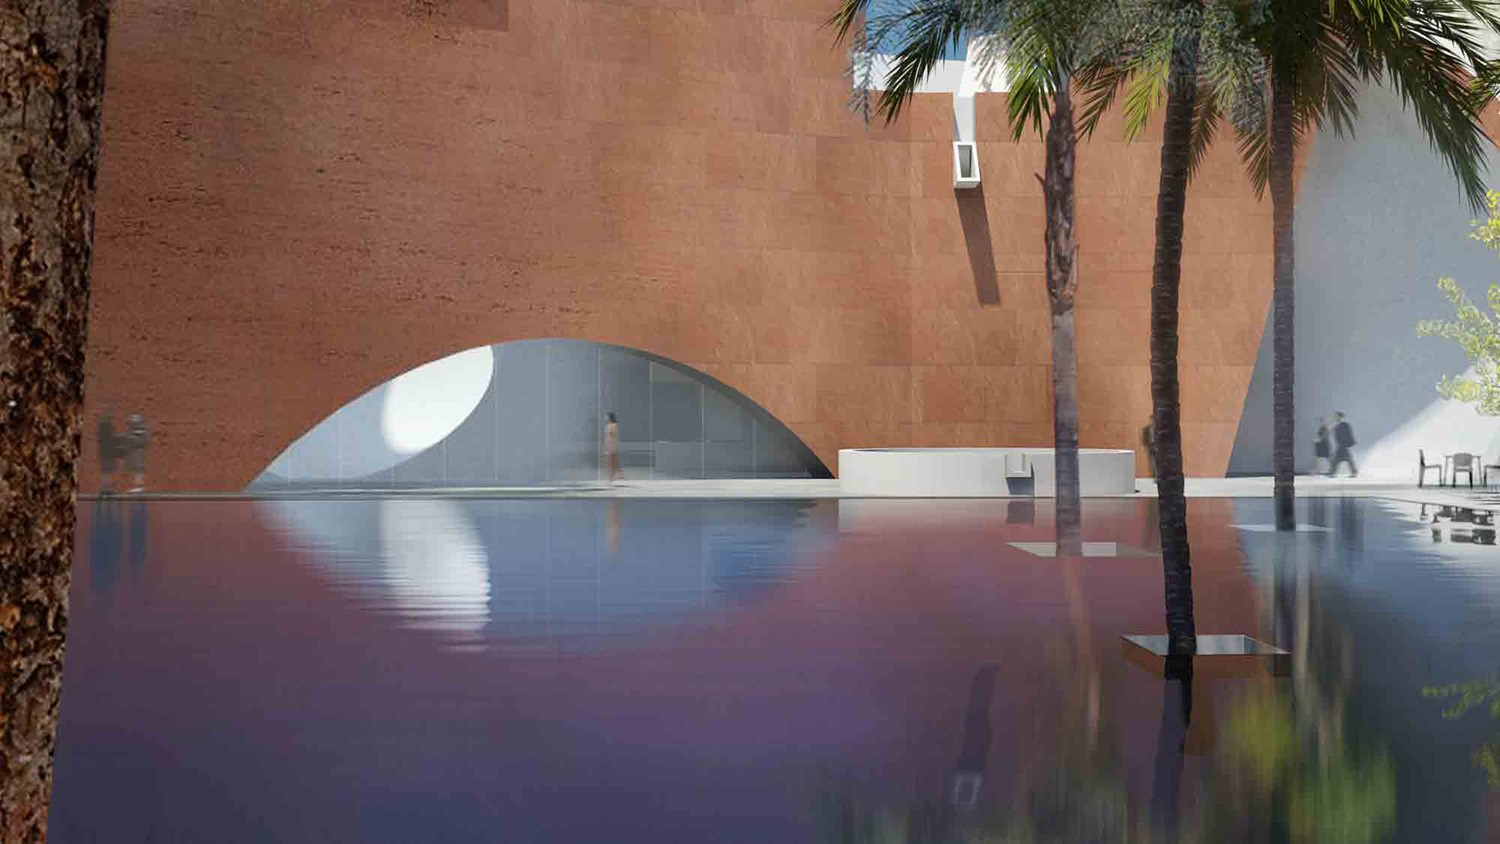 https://s3.us-east-2.amazonaws.com/steven-holl/uploads/projects/project-images/StevenHollArchitects_Mumbai_SHA_01_Pool view_WH.jpg